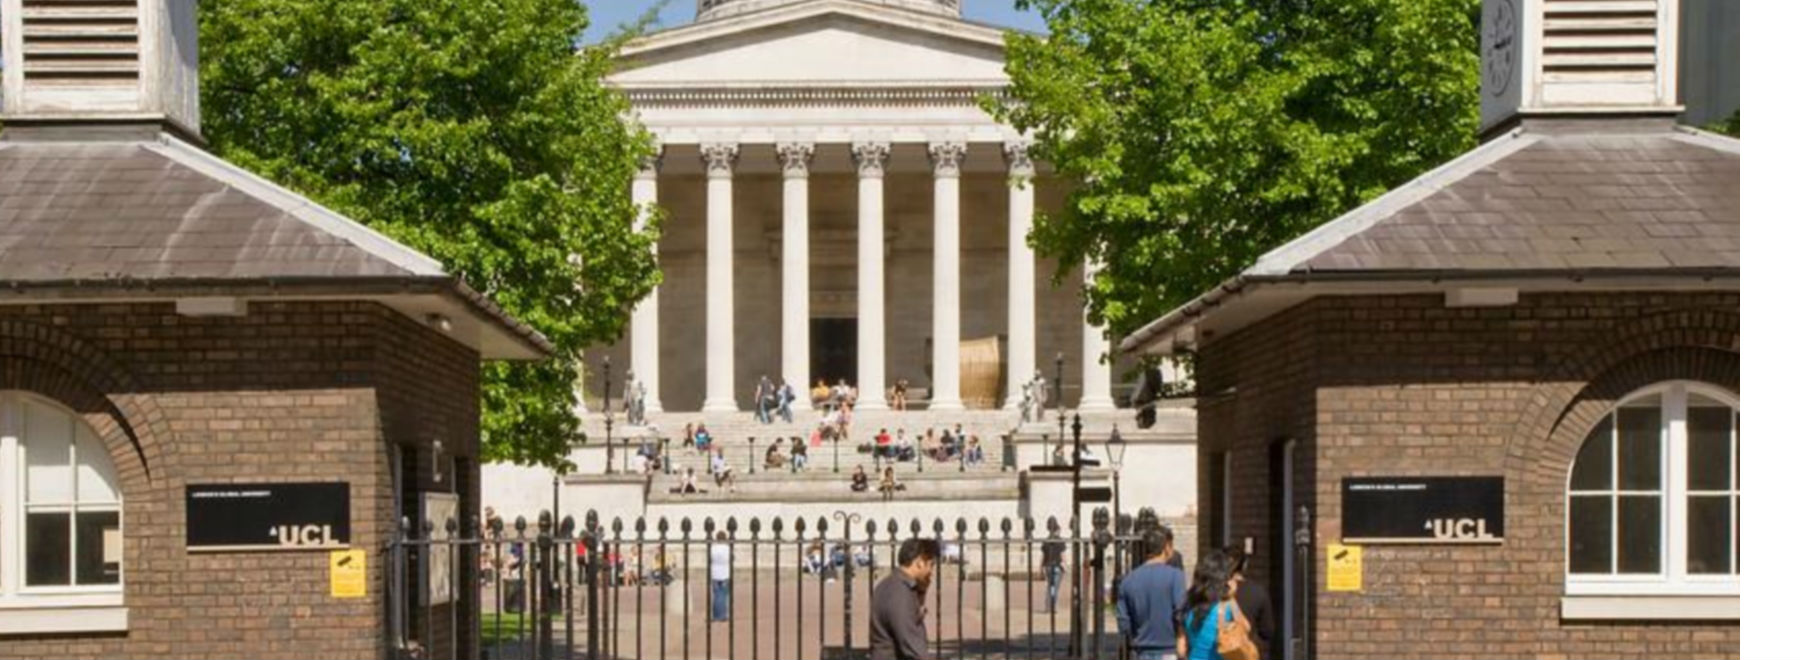 UCL (University College London) header